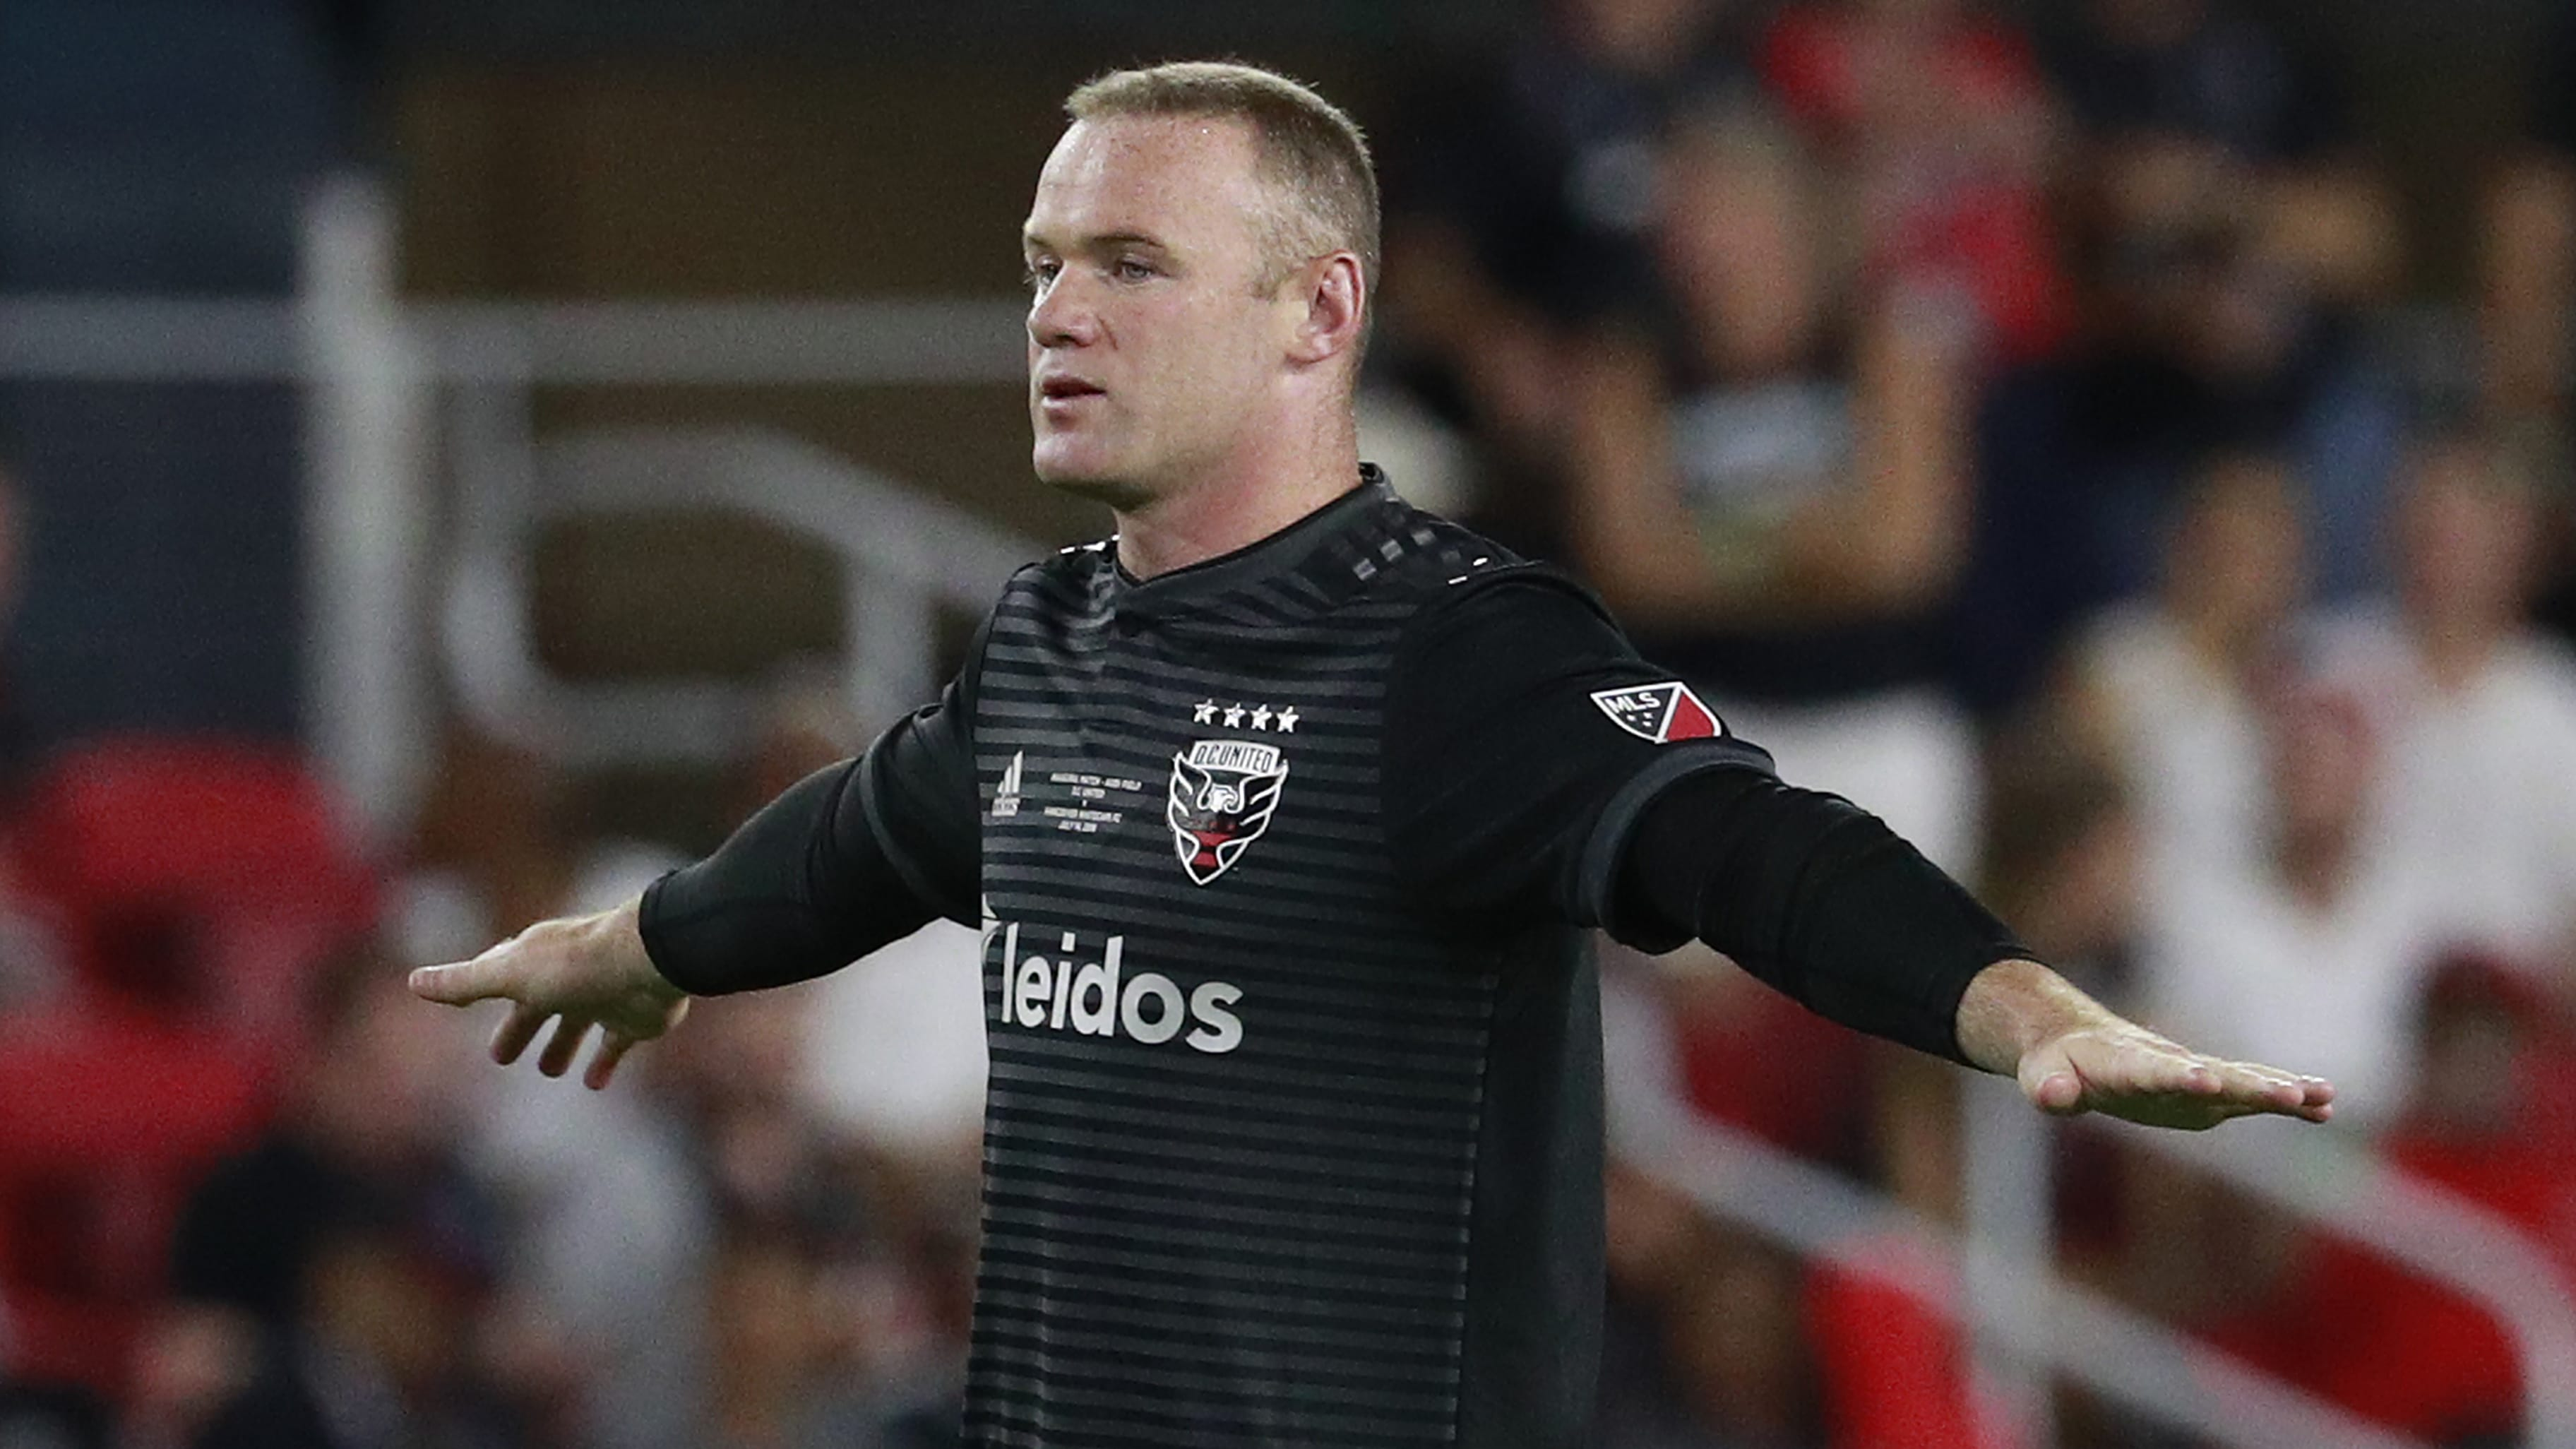 WASHINGTON, DC - JULY 14: Wayne Rooney #9 of D.C. United in action second half against the Vancouver Whitecaps during his MLS debut at Audi Field on July 14, 2018 in Washington, DC. (Photo by Patrick McDermott/Getty Images)